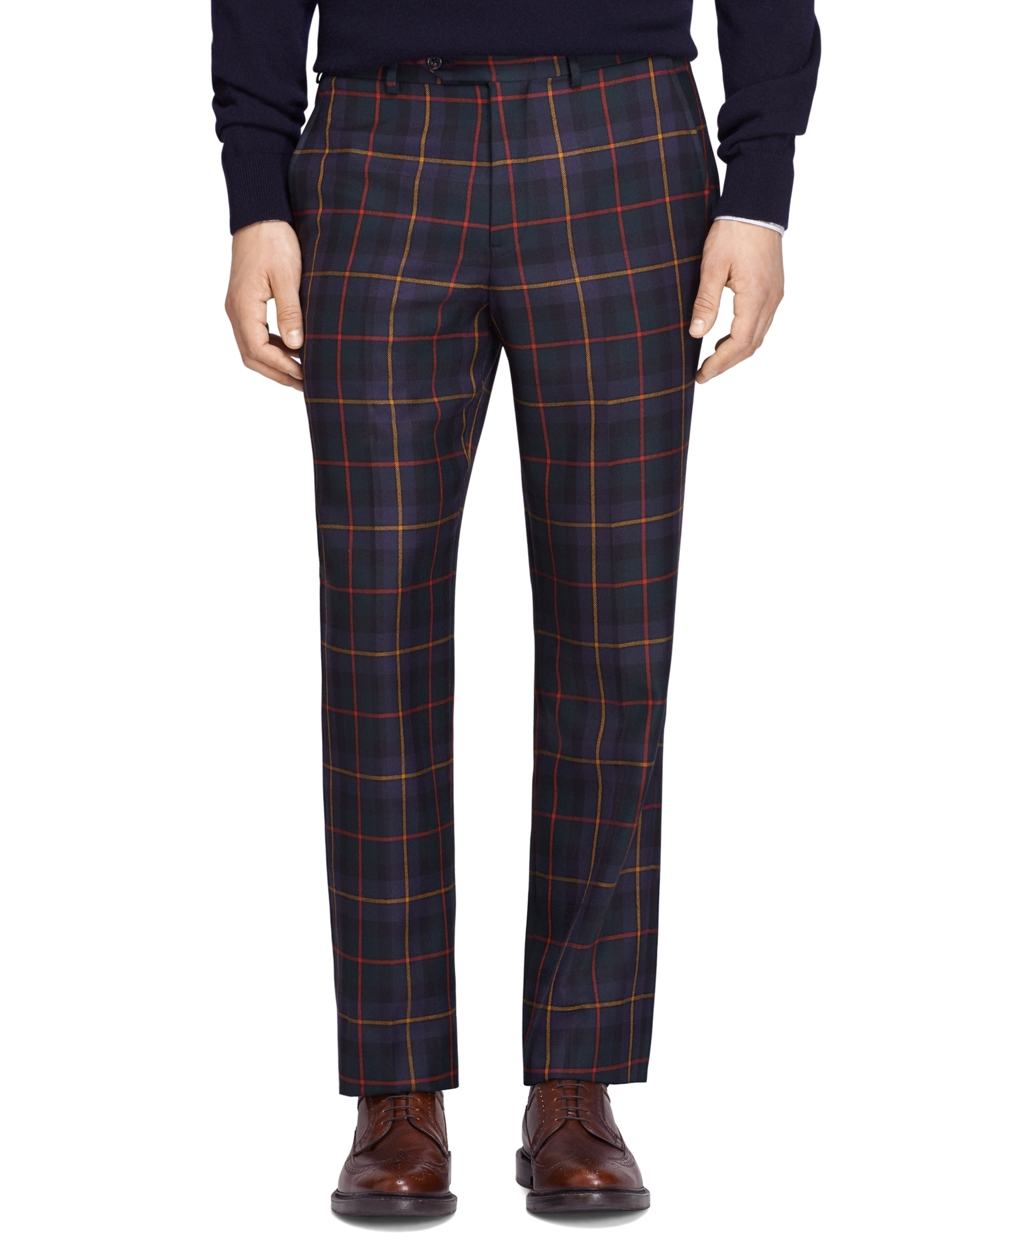 Shop Men's Clothing, Shoes & Accessories on Sale at rahipclr.ga Shop Macy's Sale & Clearance for men's clothing, & shoes today! Free Shipping on eligible items.